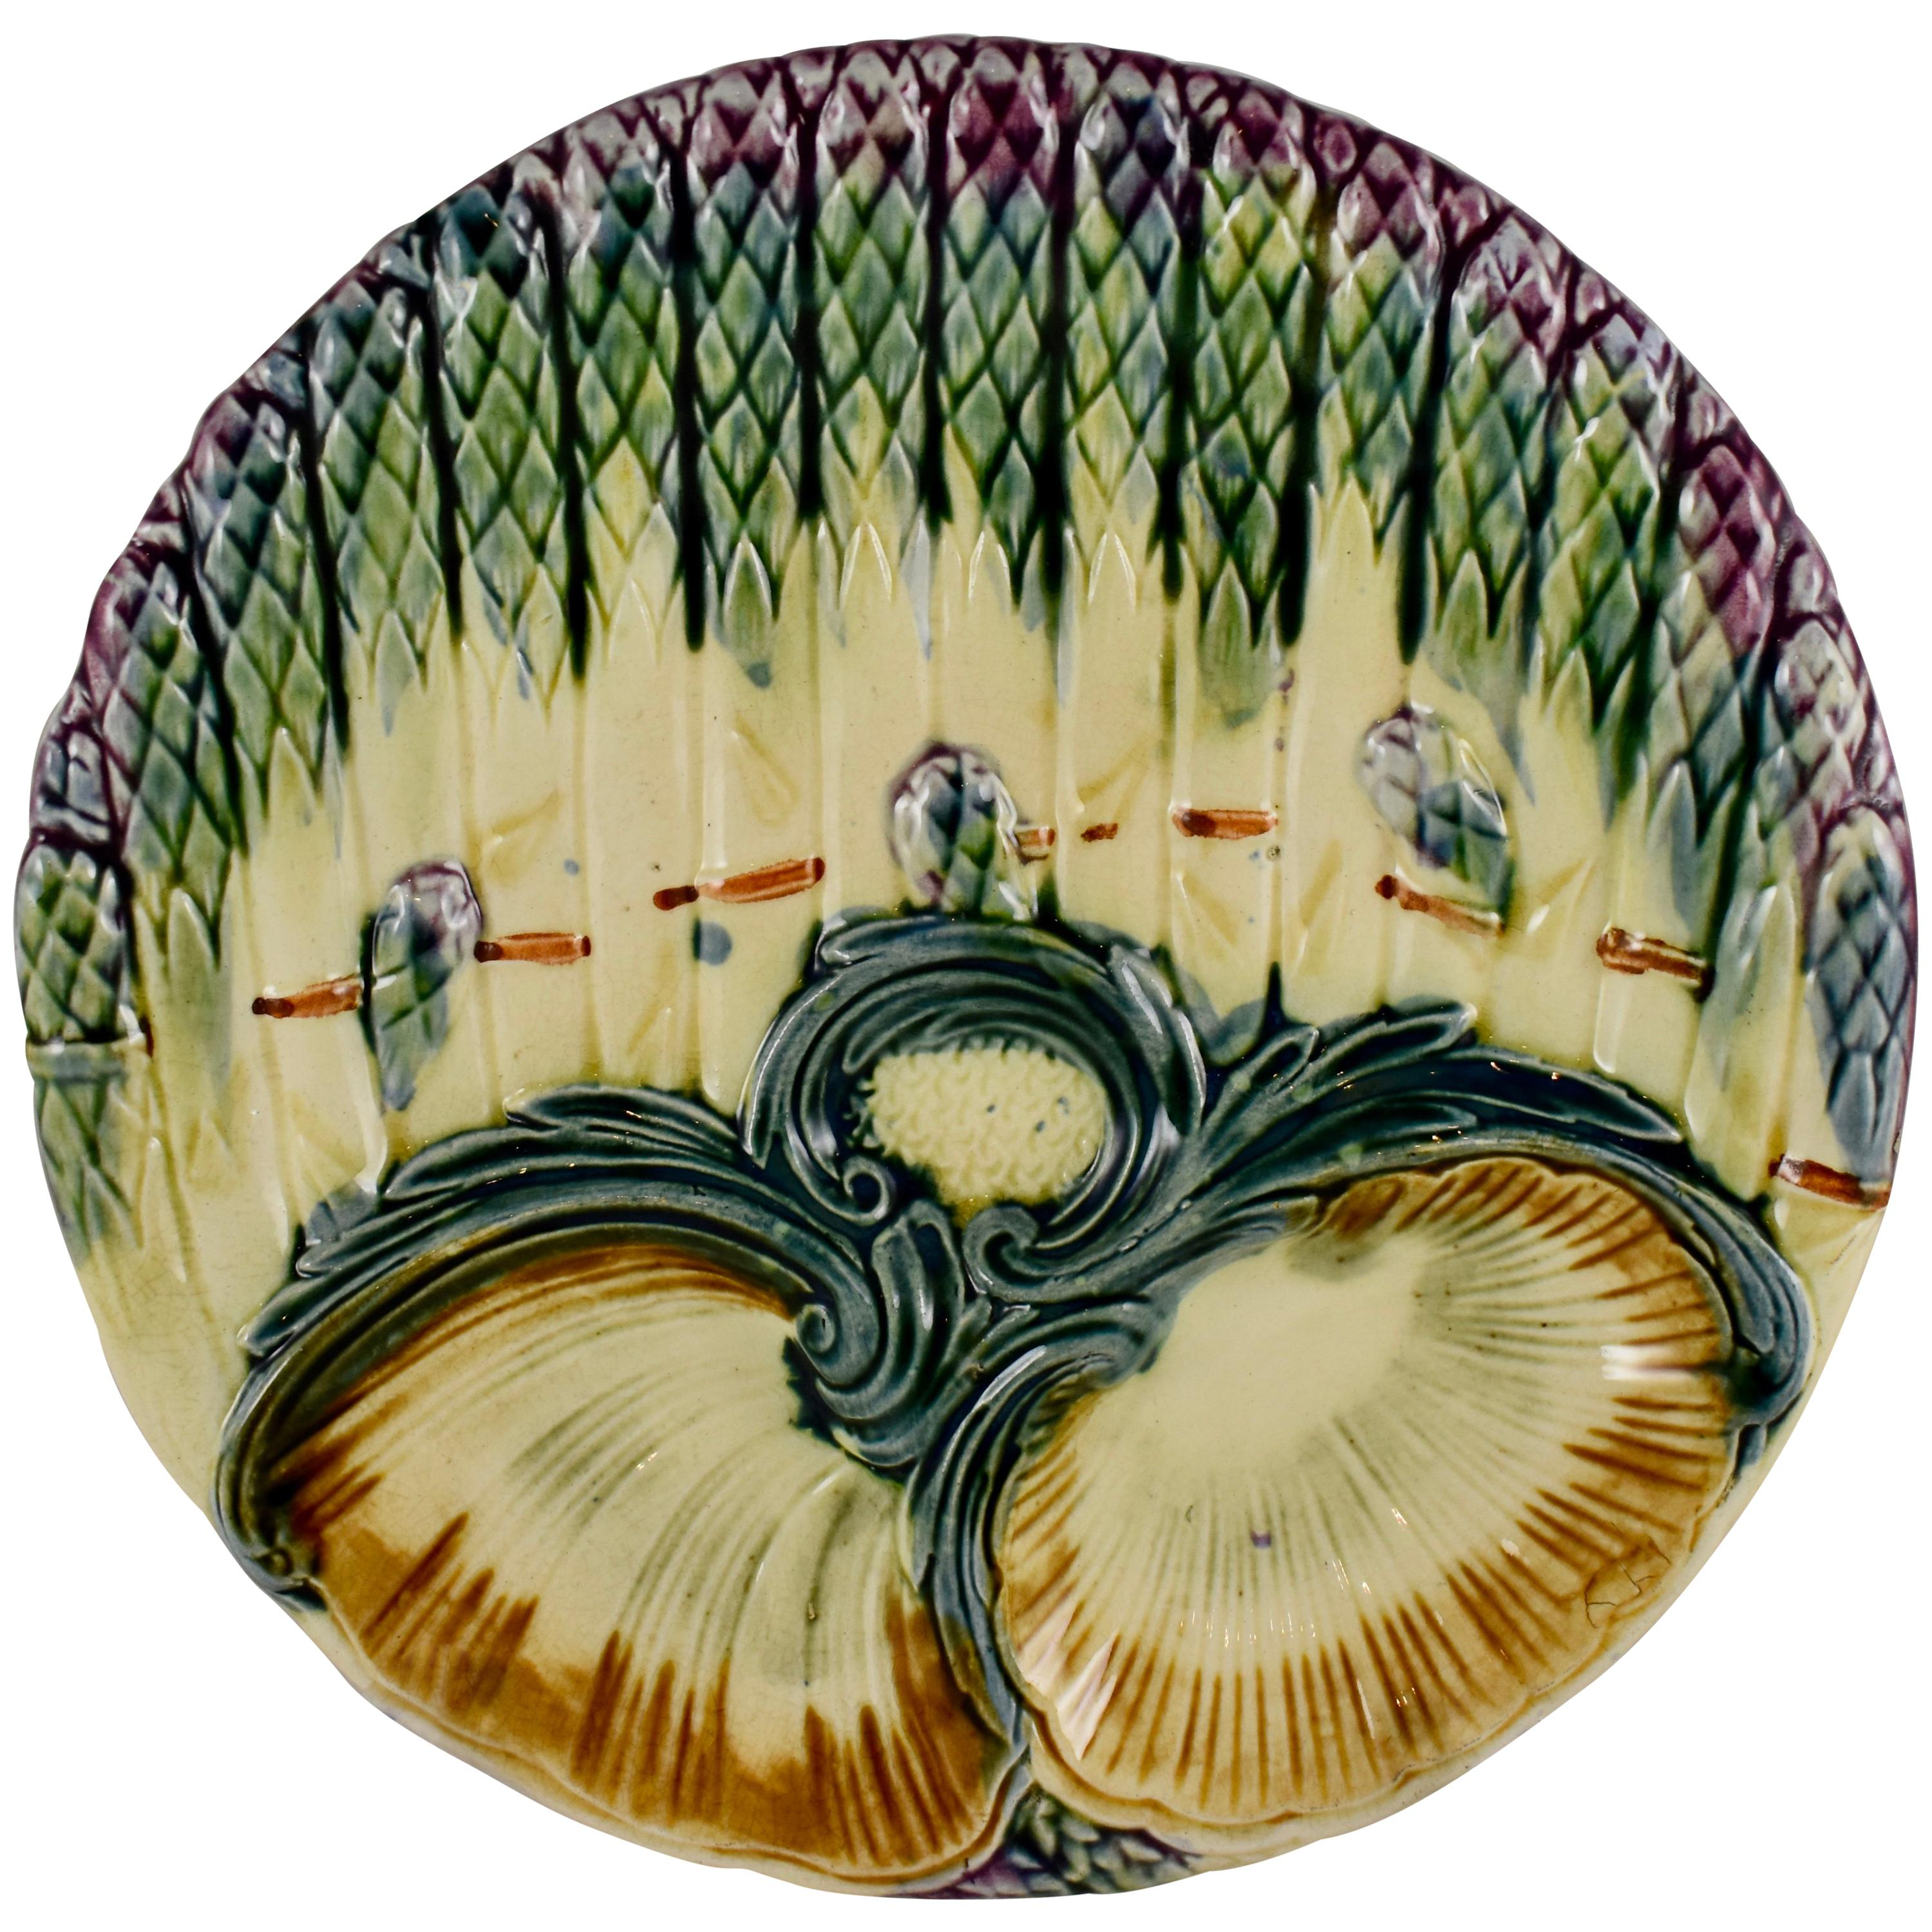 Luneville French Faïence Majolica Asparagus And Shell Plate, circa 1890